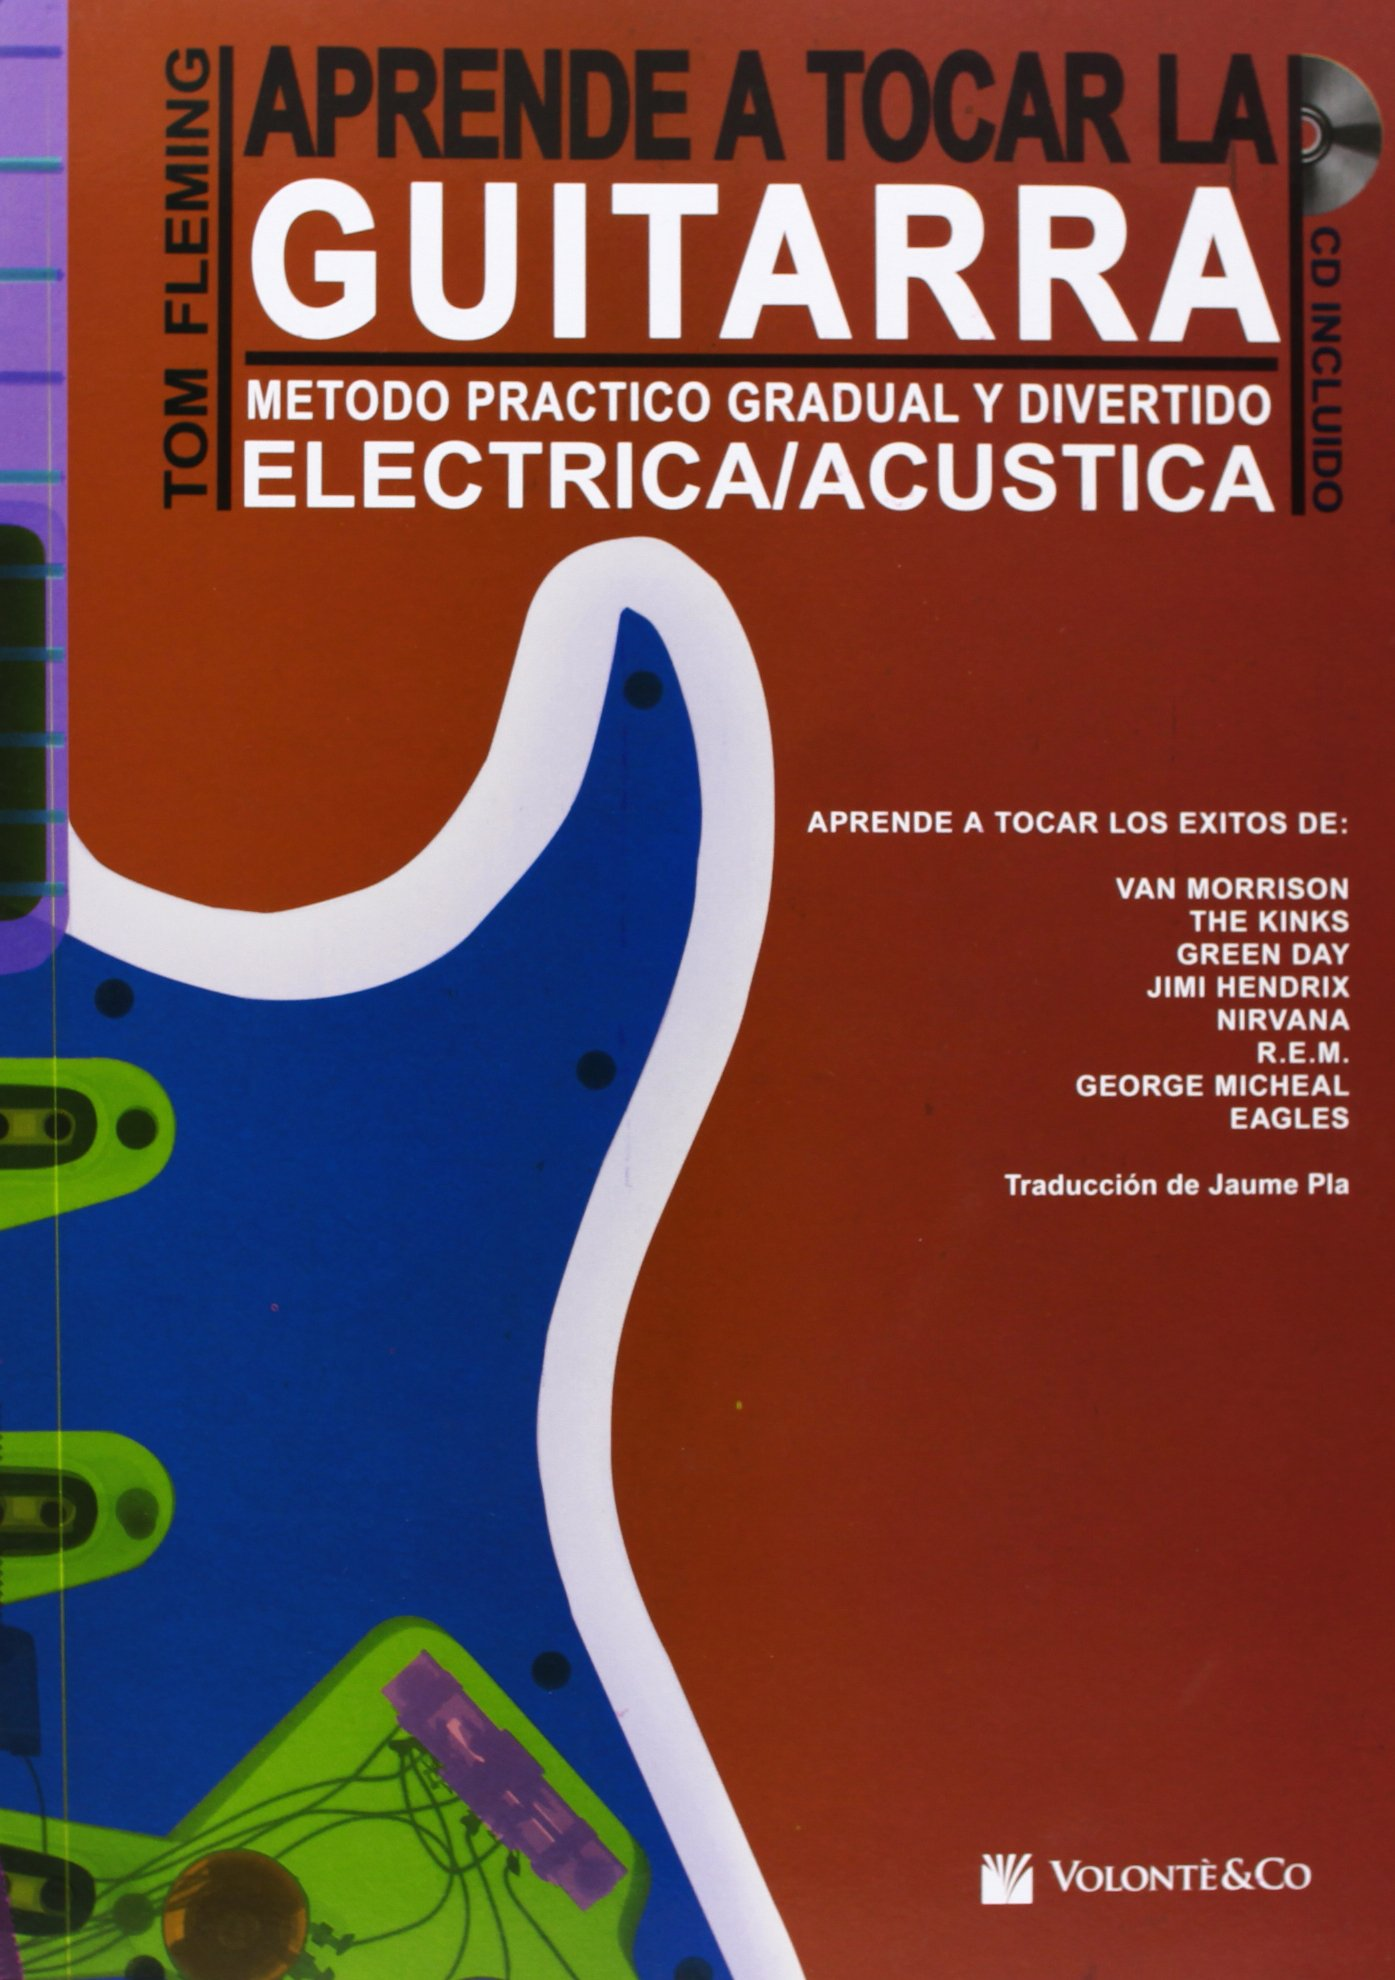 FLEMING T. - Aprende a Tocar la Guitarra (Inc.CD): FLEMING T.: 9788863881325: Amazon.com: Books